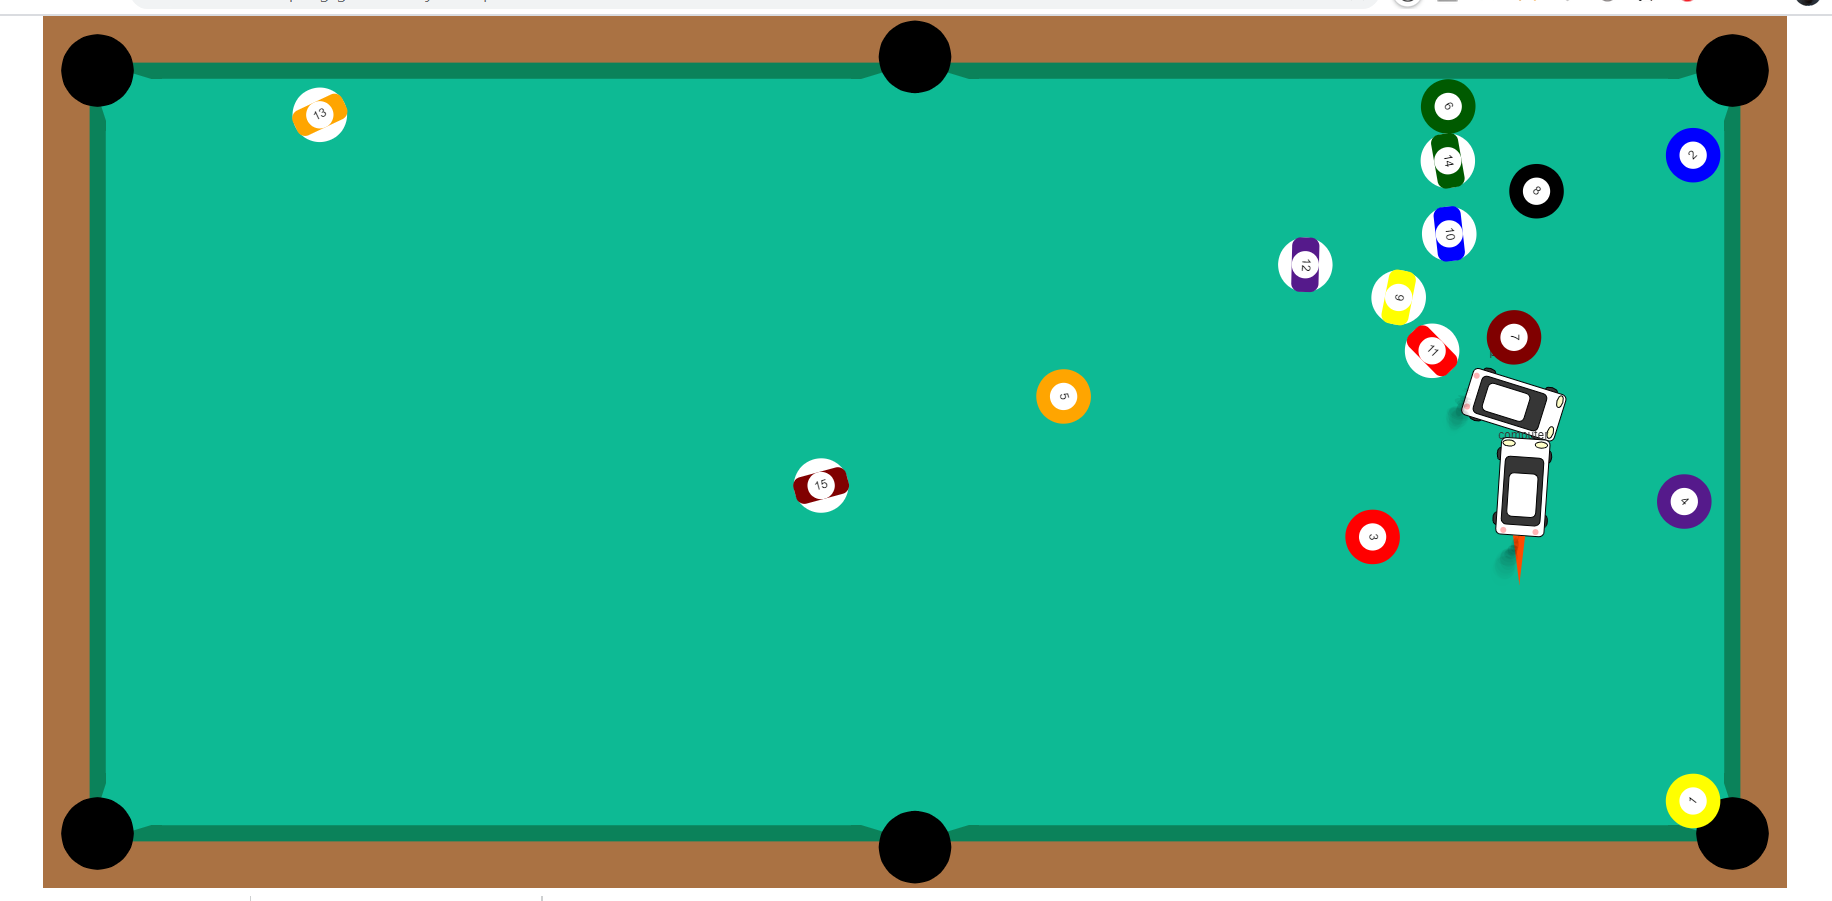 Build a P5.js Multiplayer Car 8 Ball Pool Billiards Game in Browser Using Javascript Full Project For Beginners